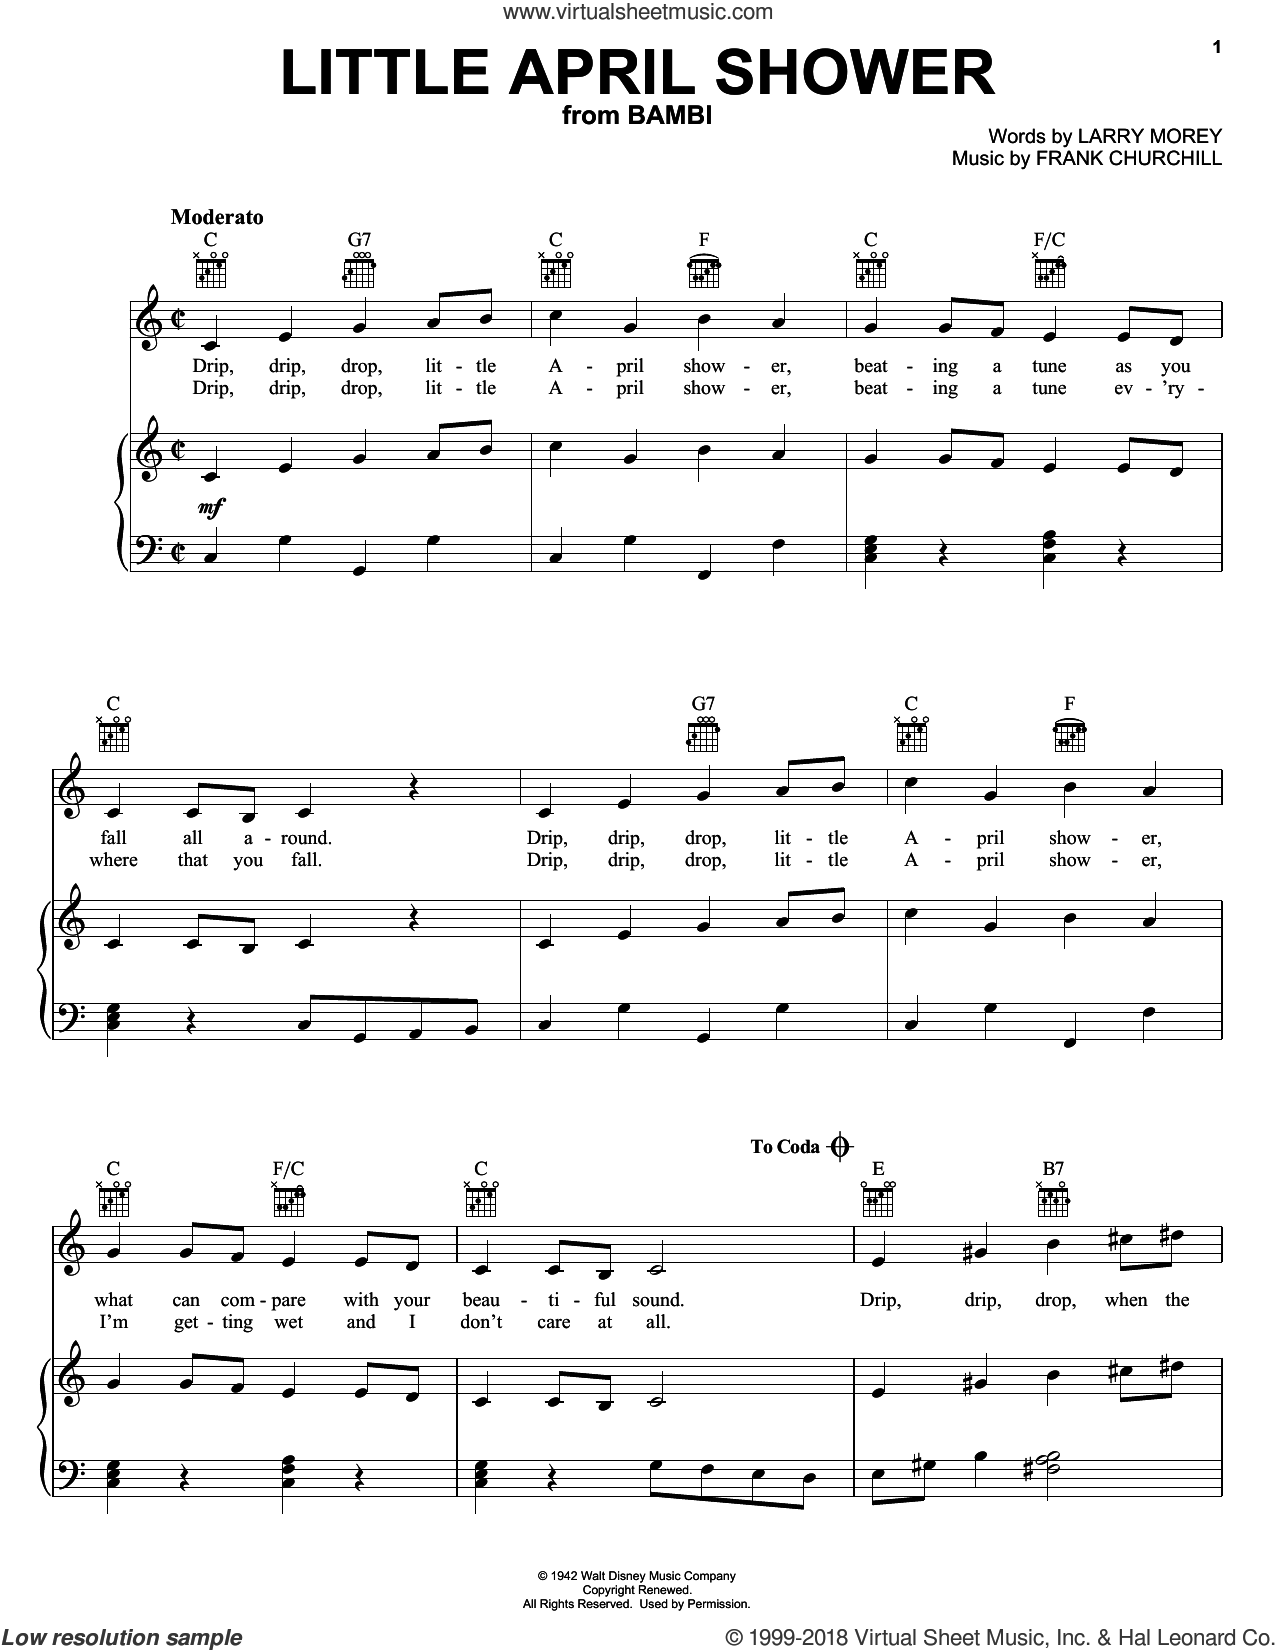 Little April Shower sheet music for voice, piano or guitar by Frank Churchill, Bambi II (Movie) and Larry Morey, intermediate skill level